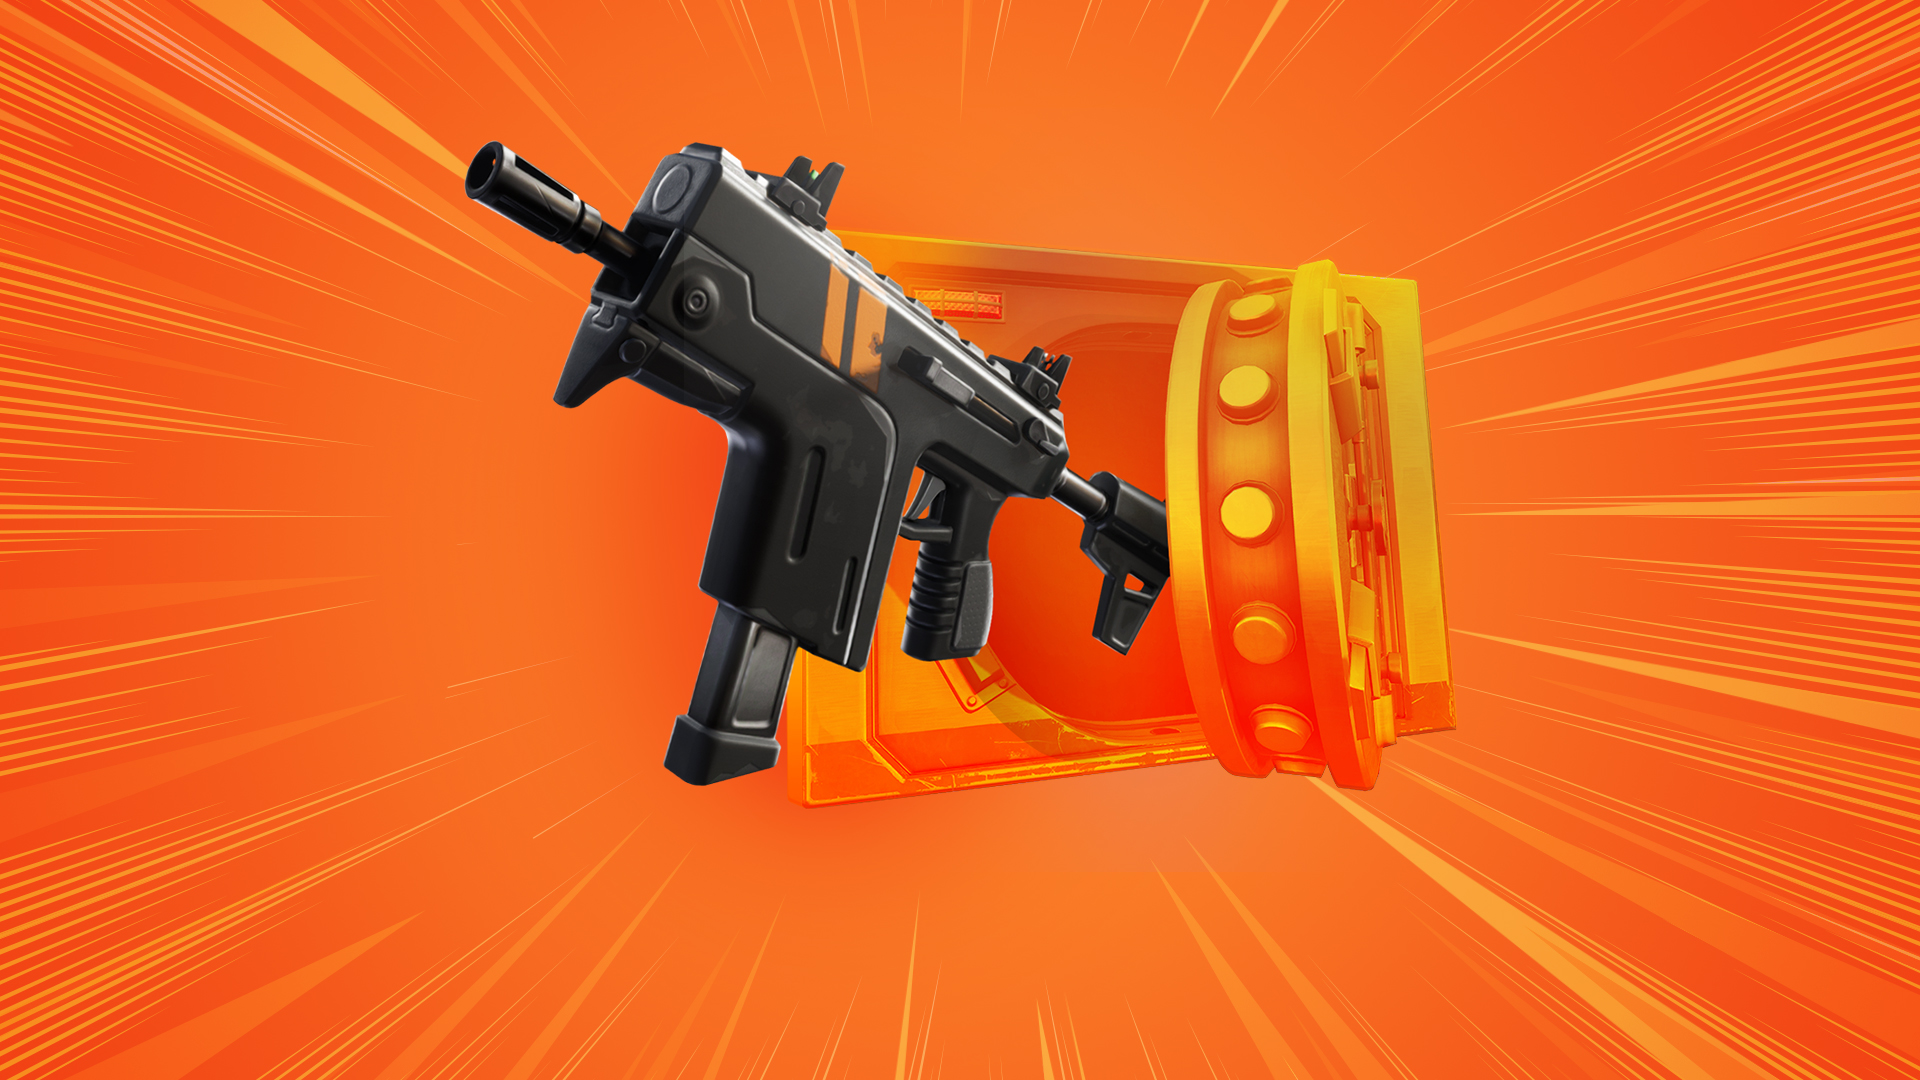 Rapid Fire SMG icon